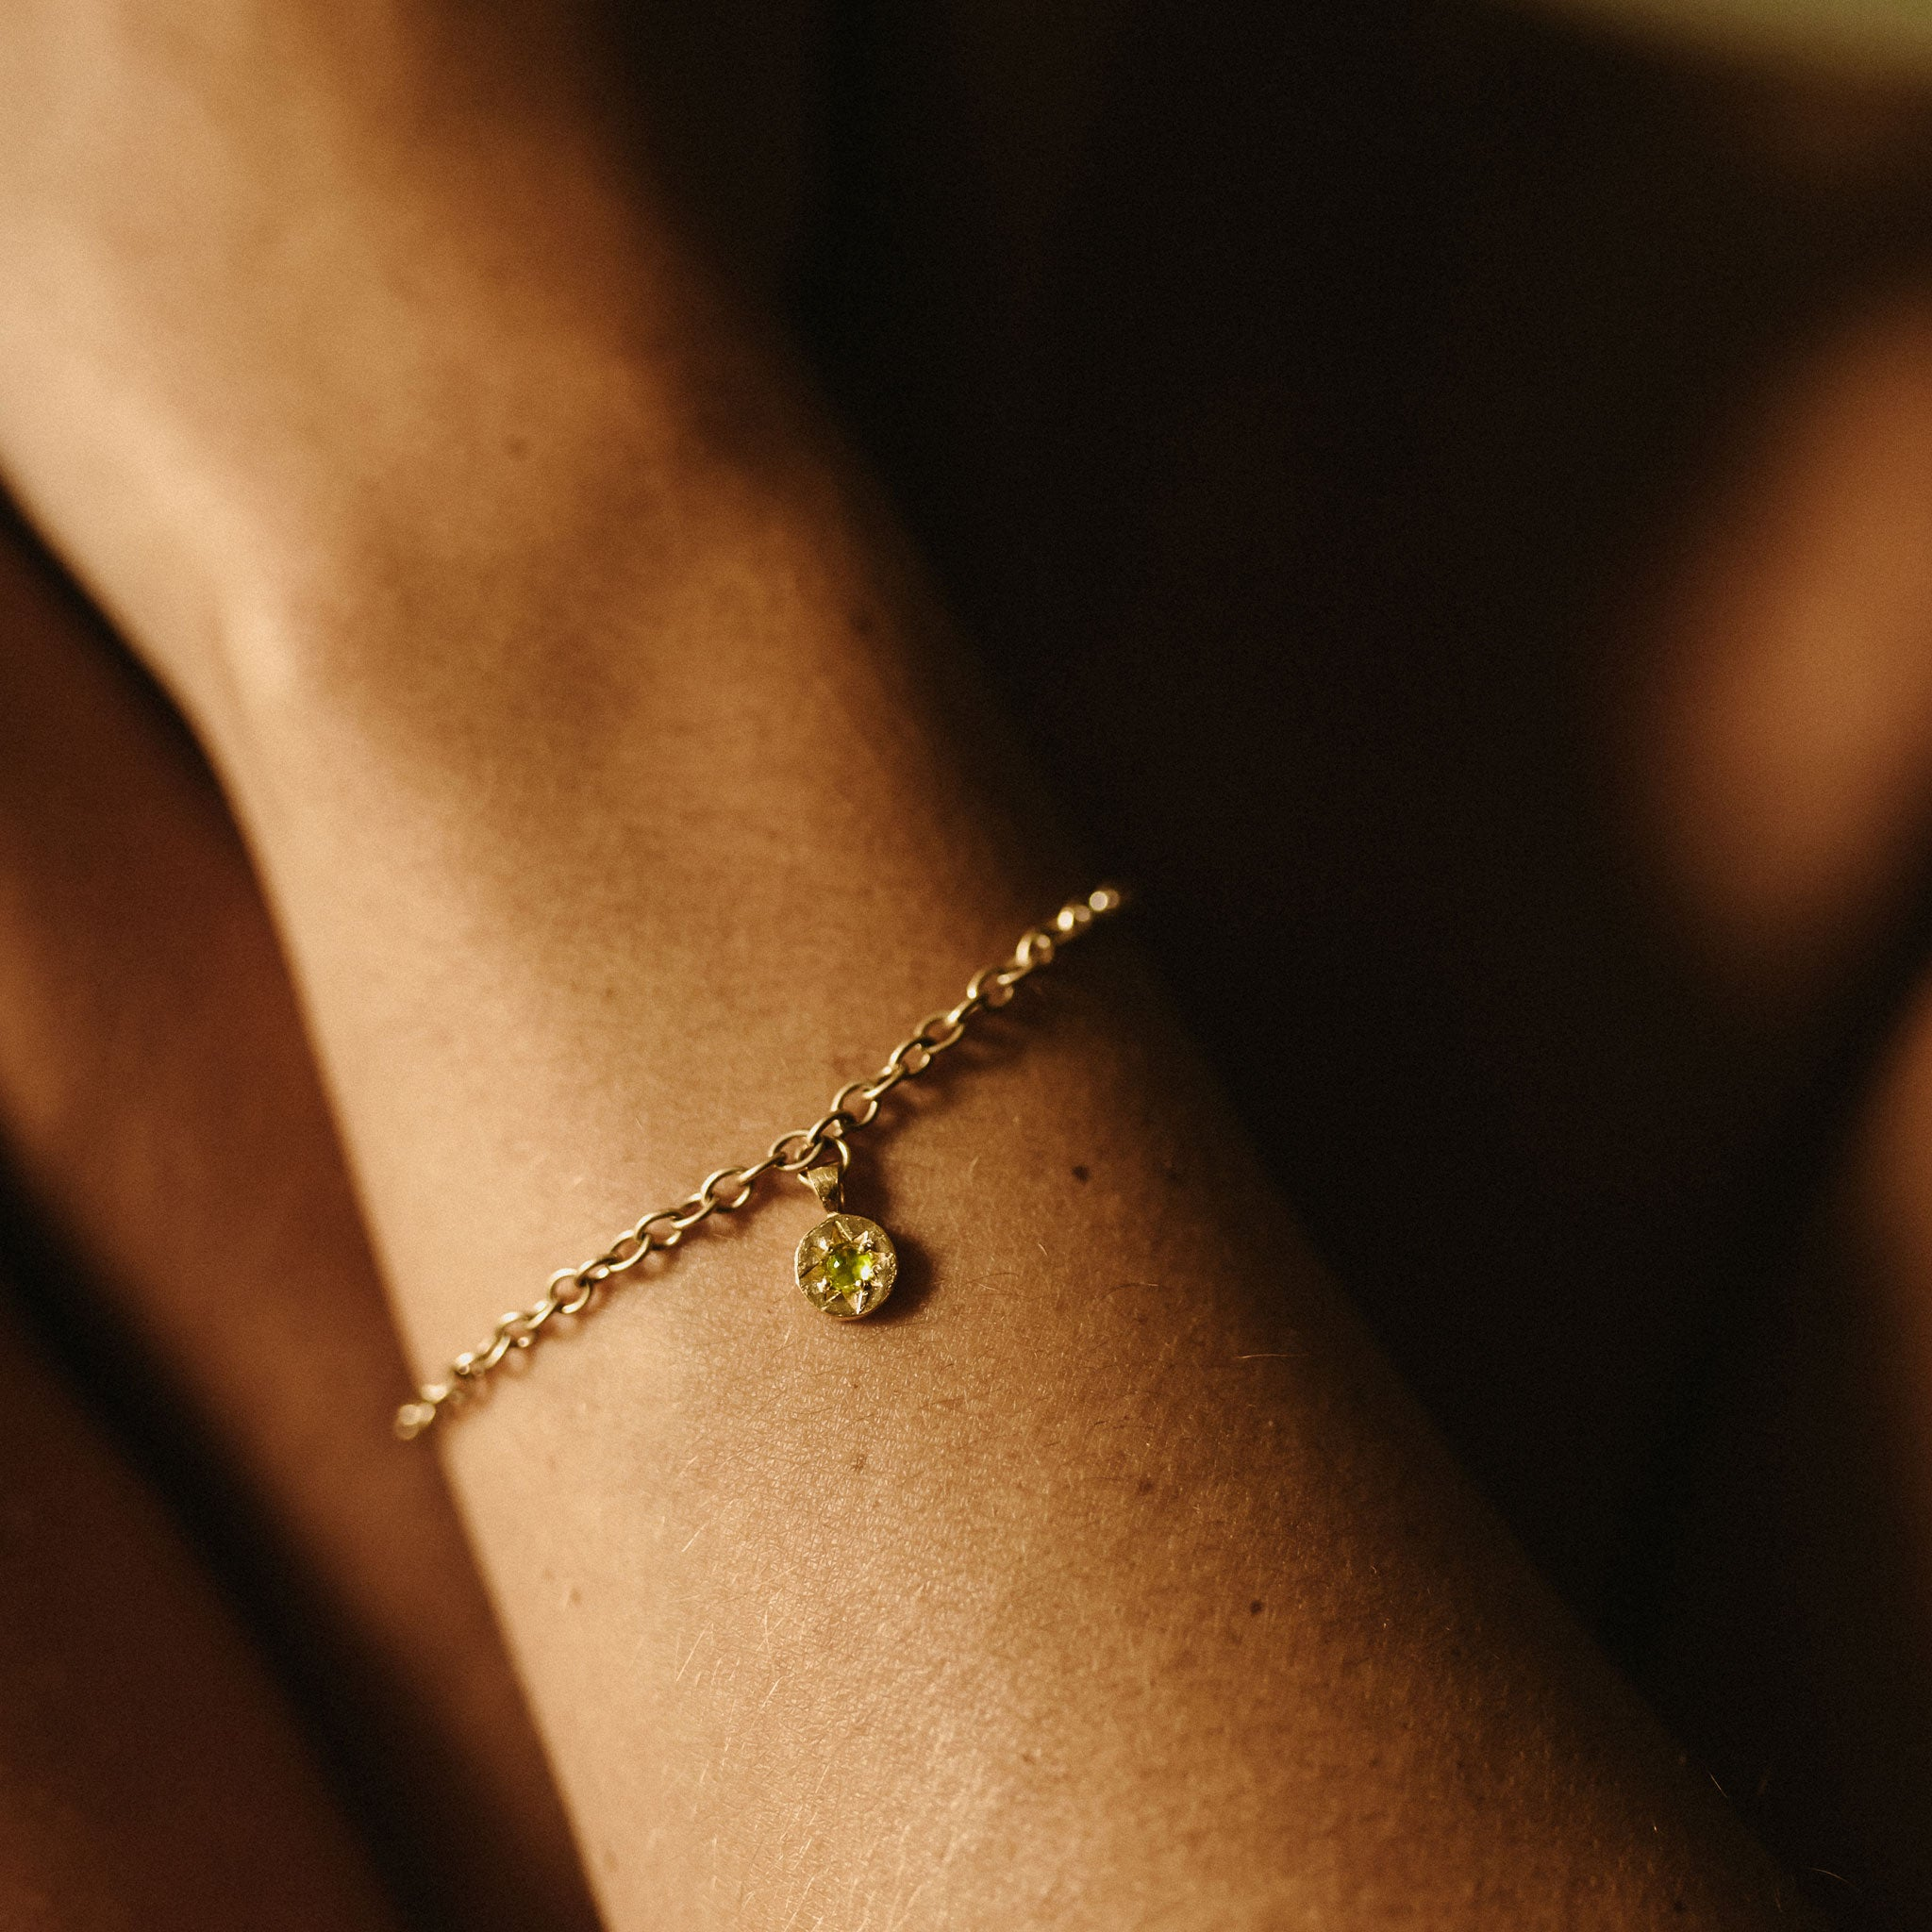 Wanderlust Life August birthstone 14k gold fill charm bracelet featuring semi precious peridot gemstone symbolising the month of August. August birthstone gold bracelet available in small 6.5